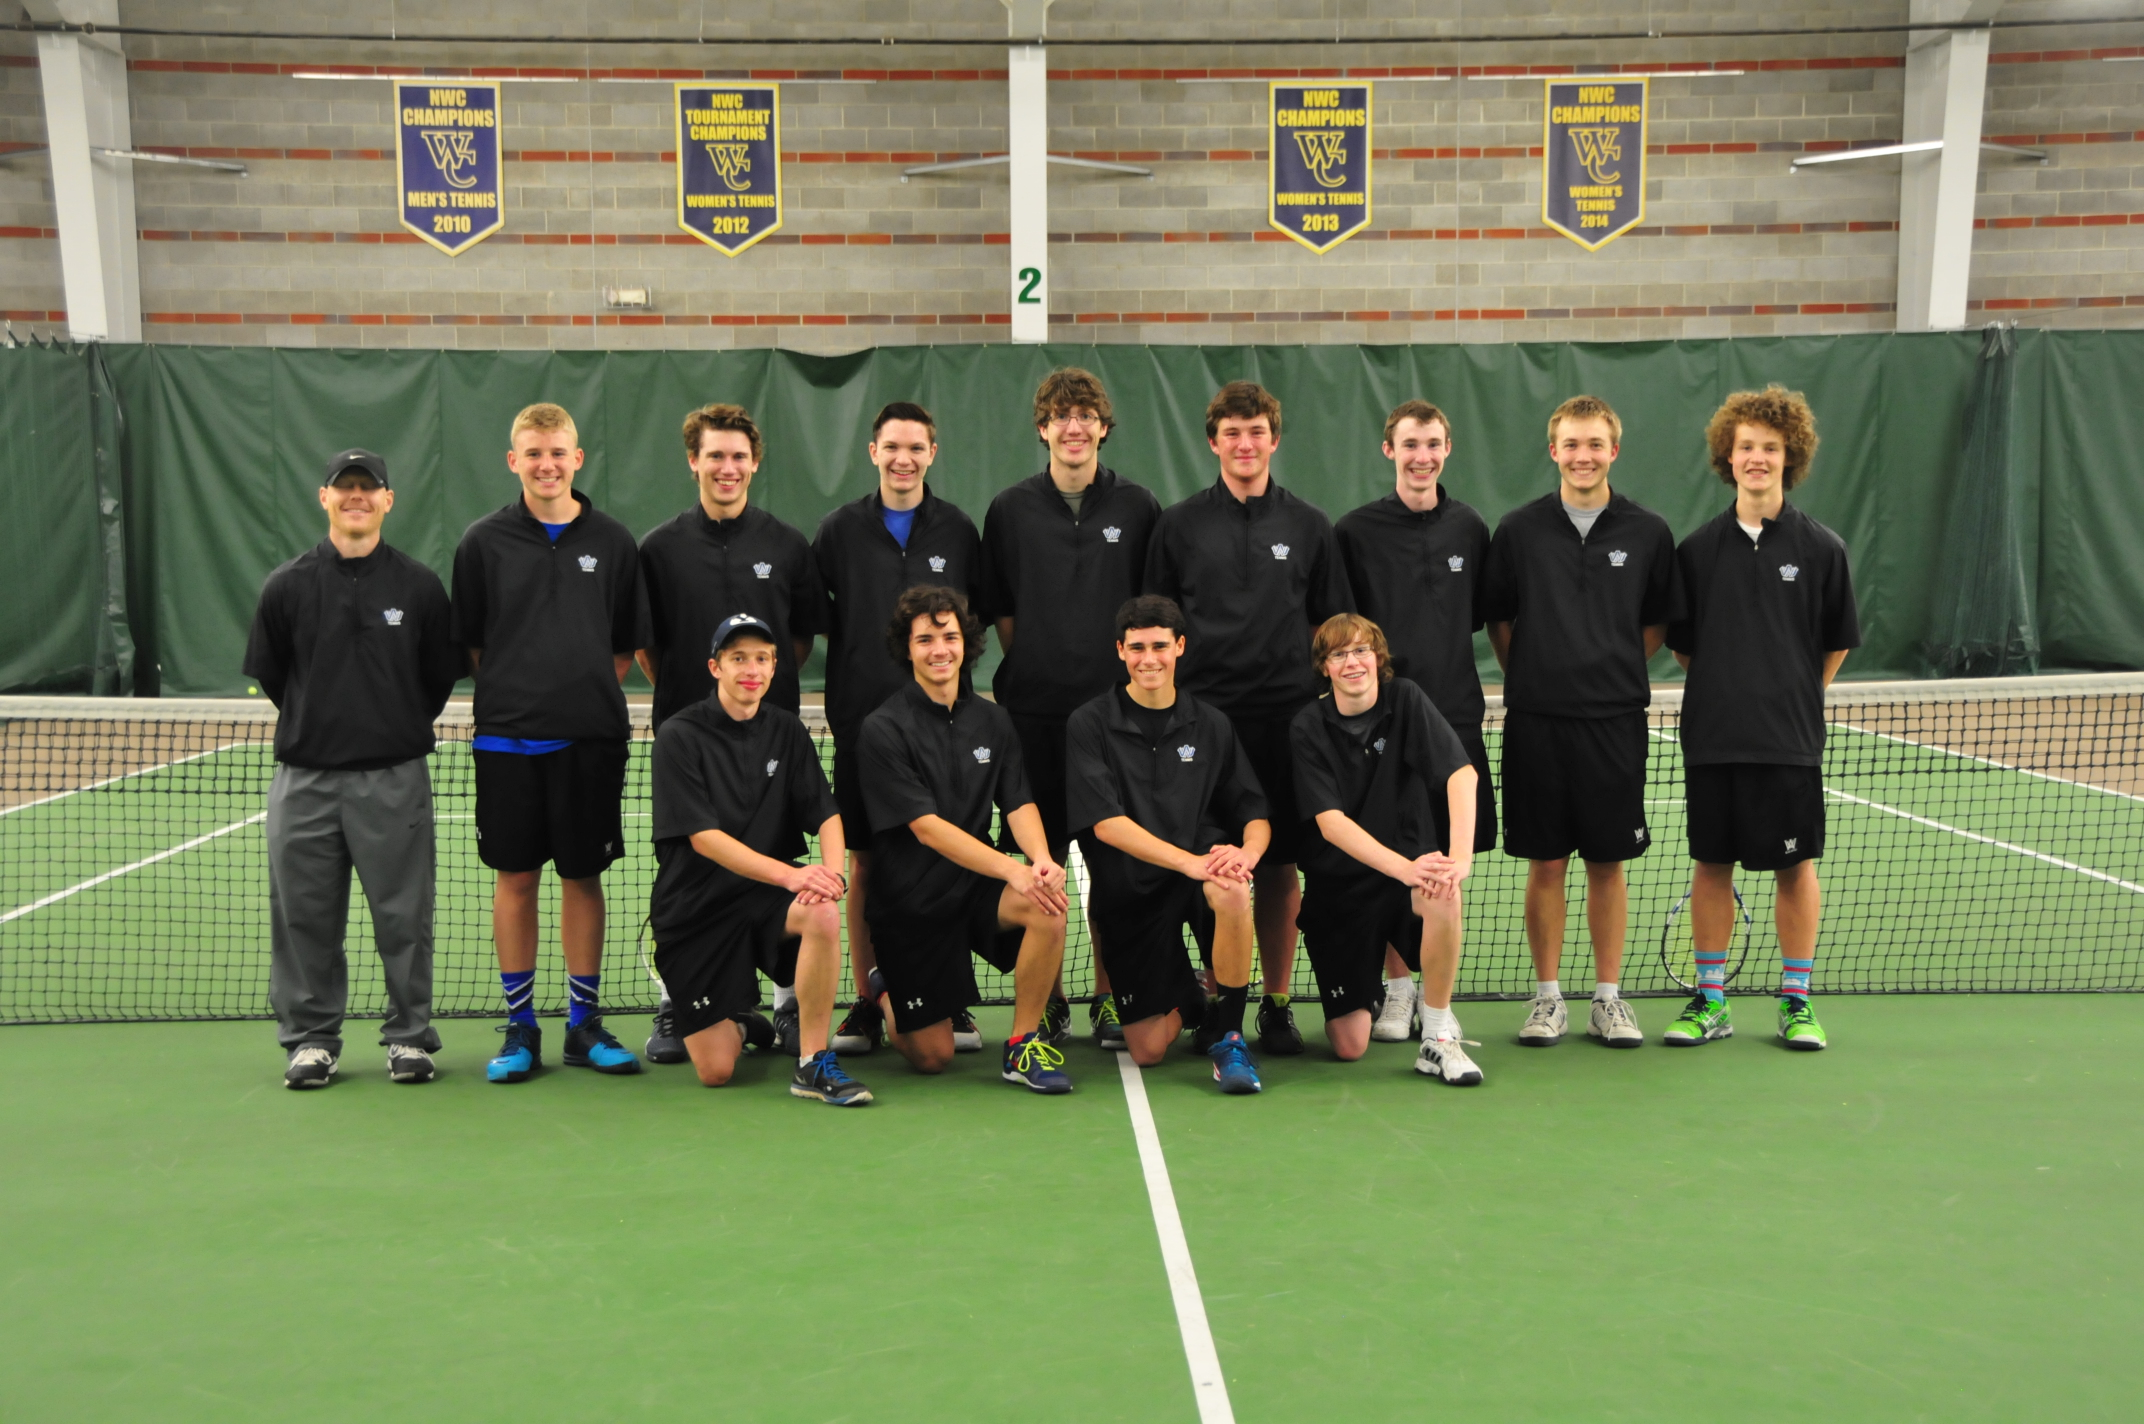 images/athletics/Tennis/2015_Boys_Tennis_-_Varsity.jpg